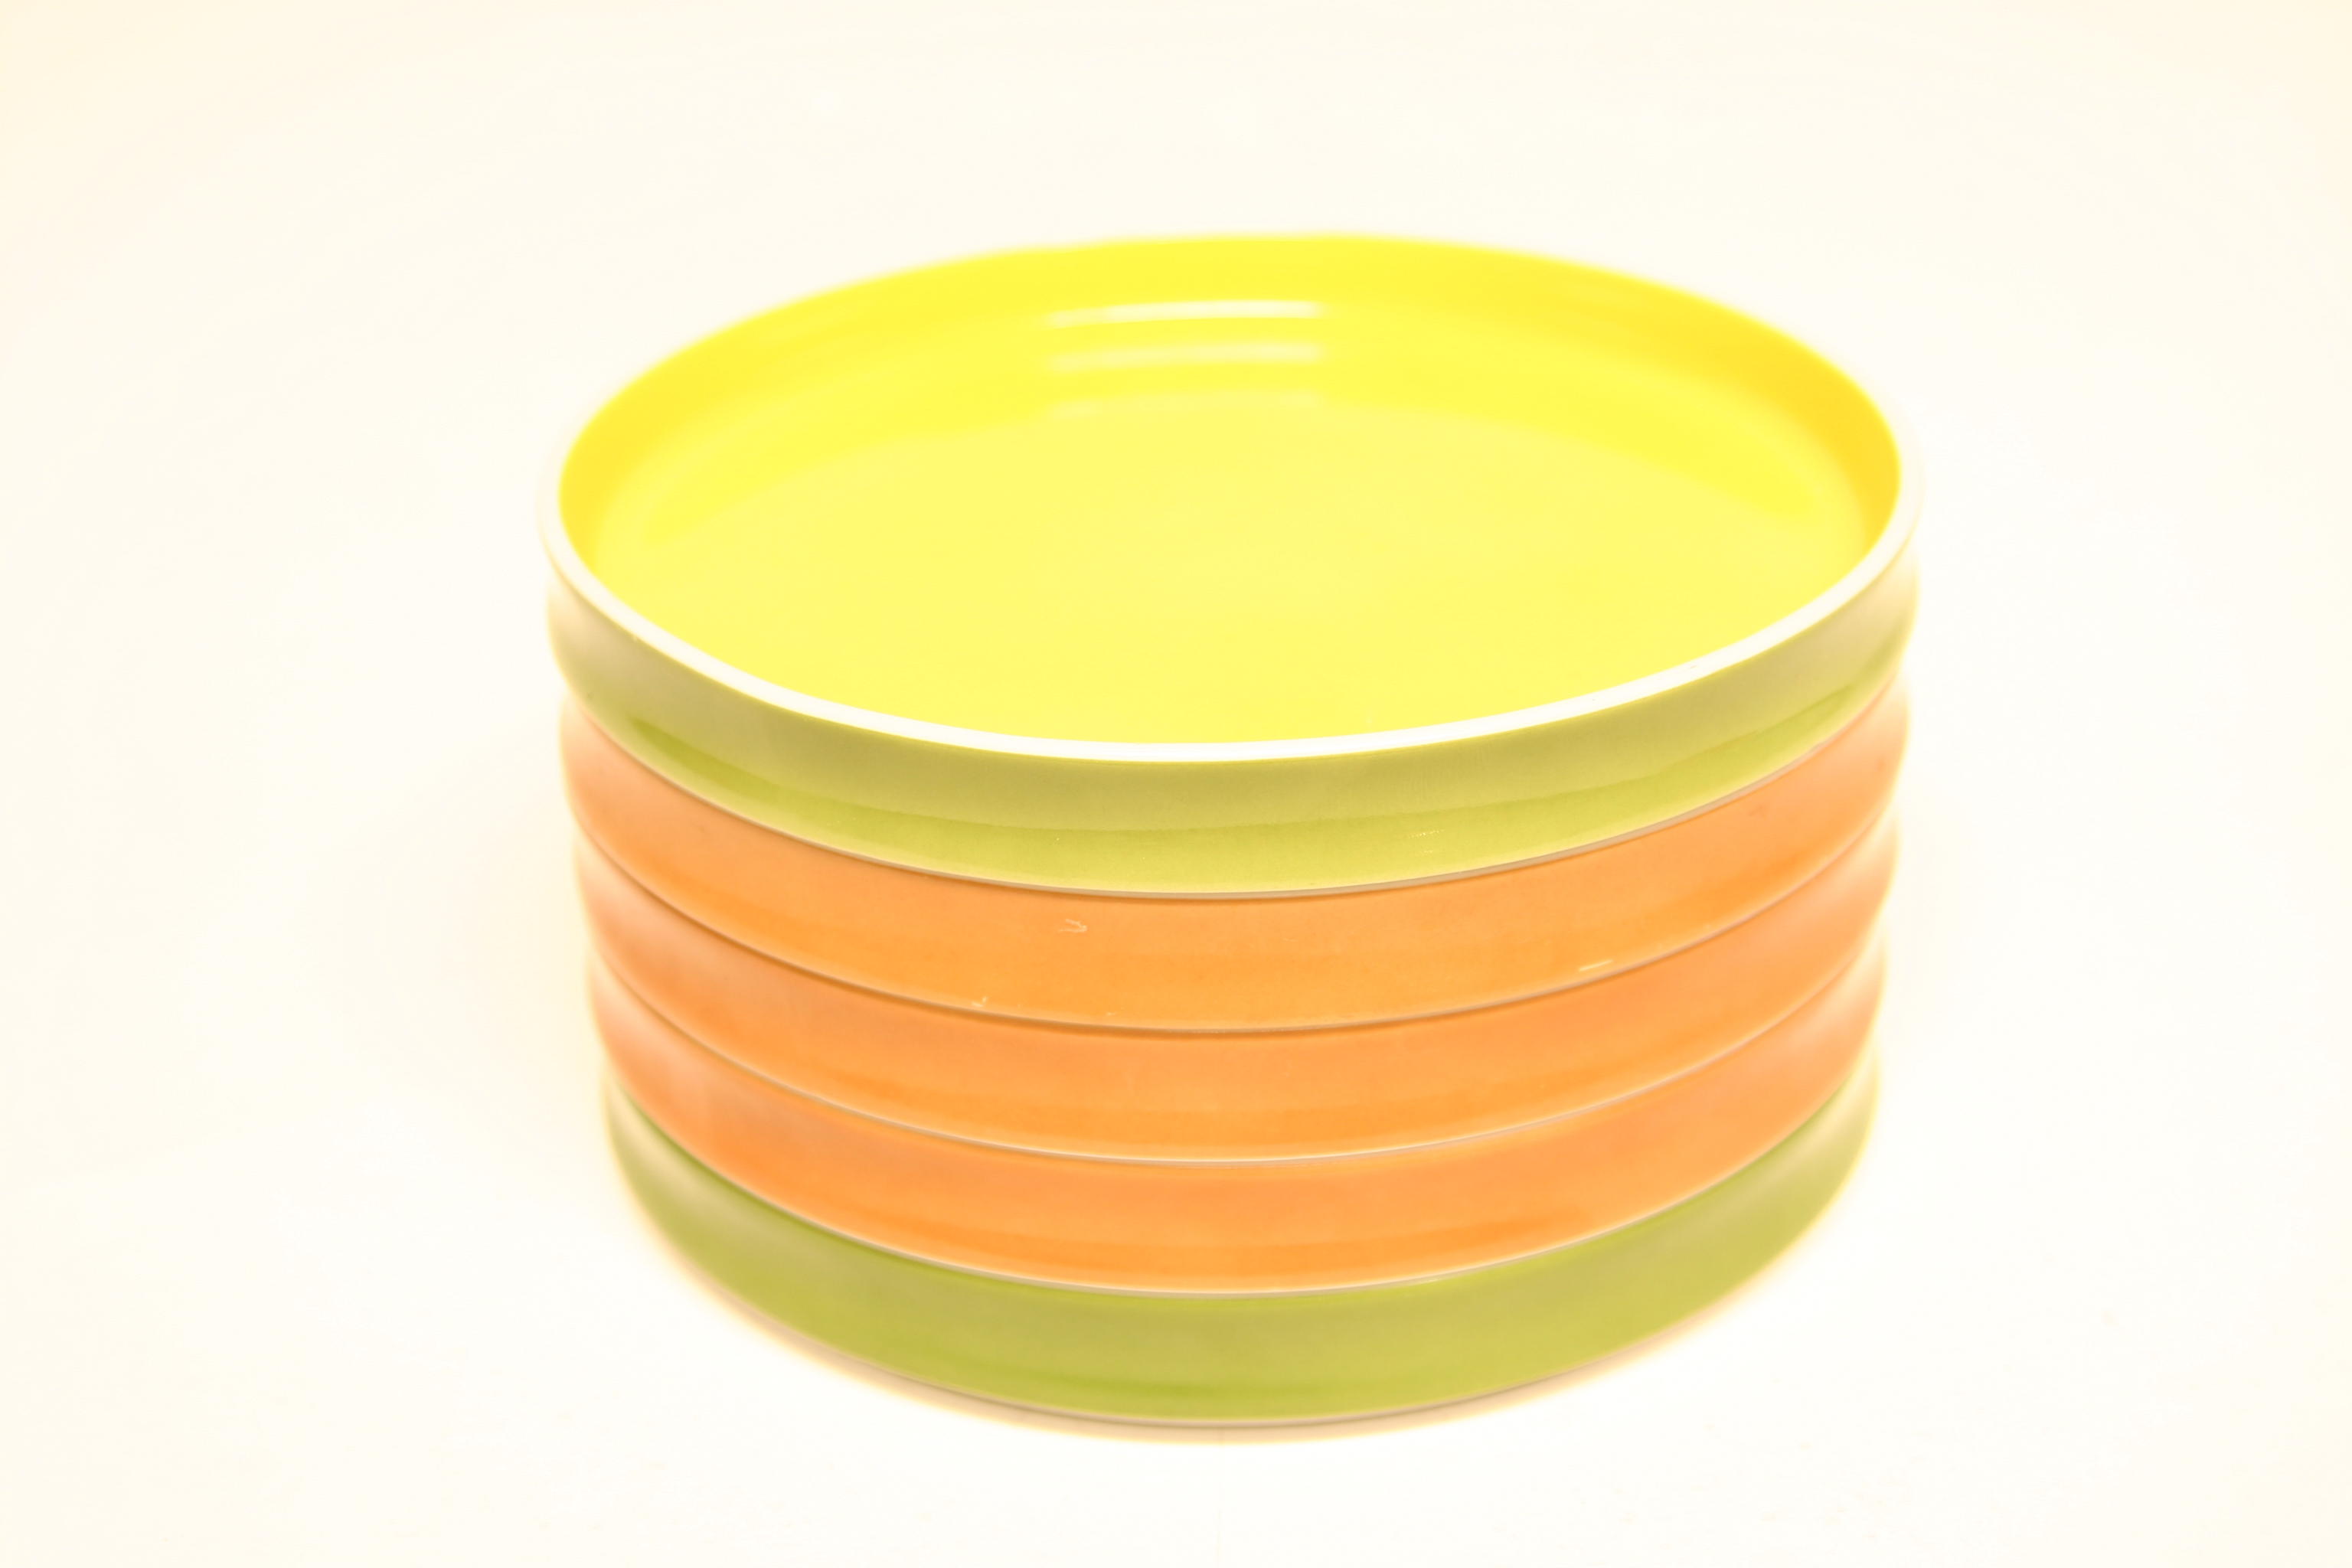 Stacking plates